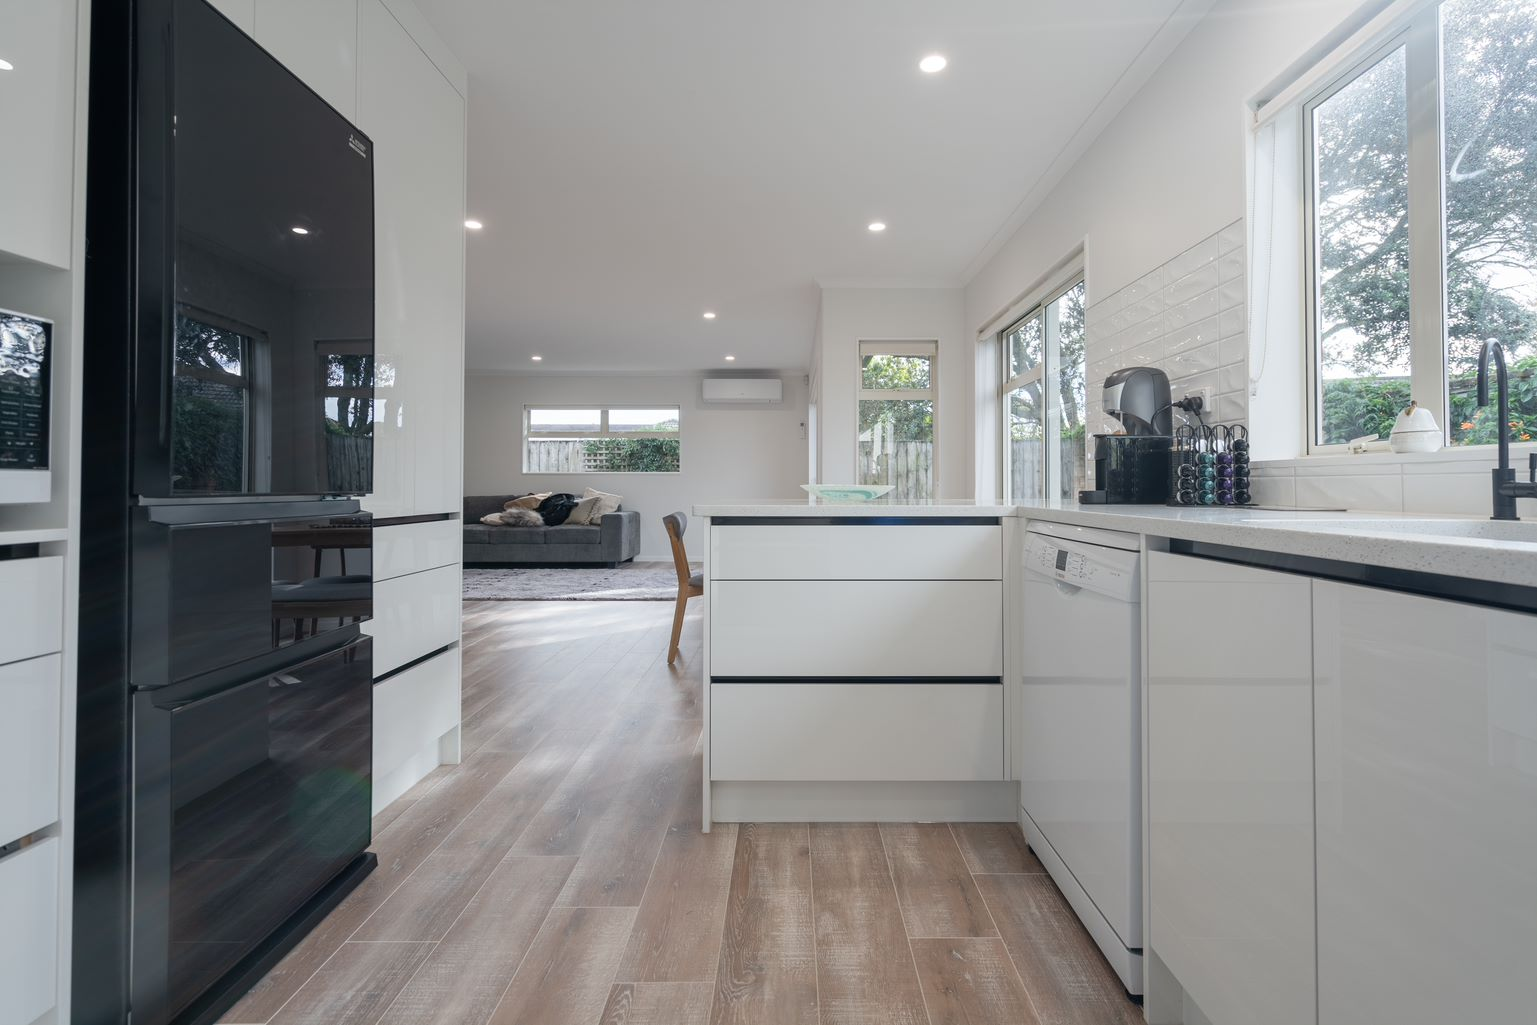 laminate flooring in kitchen and living areas